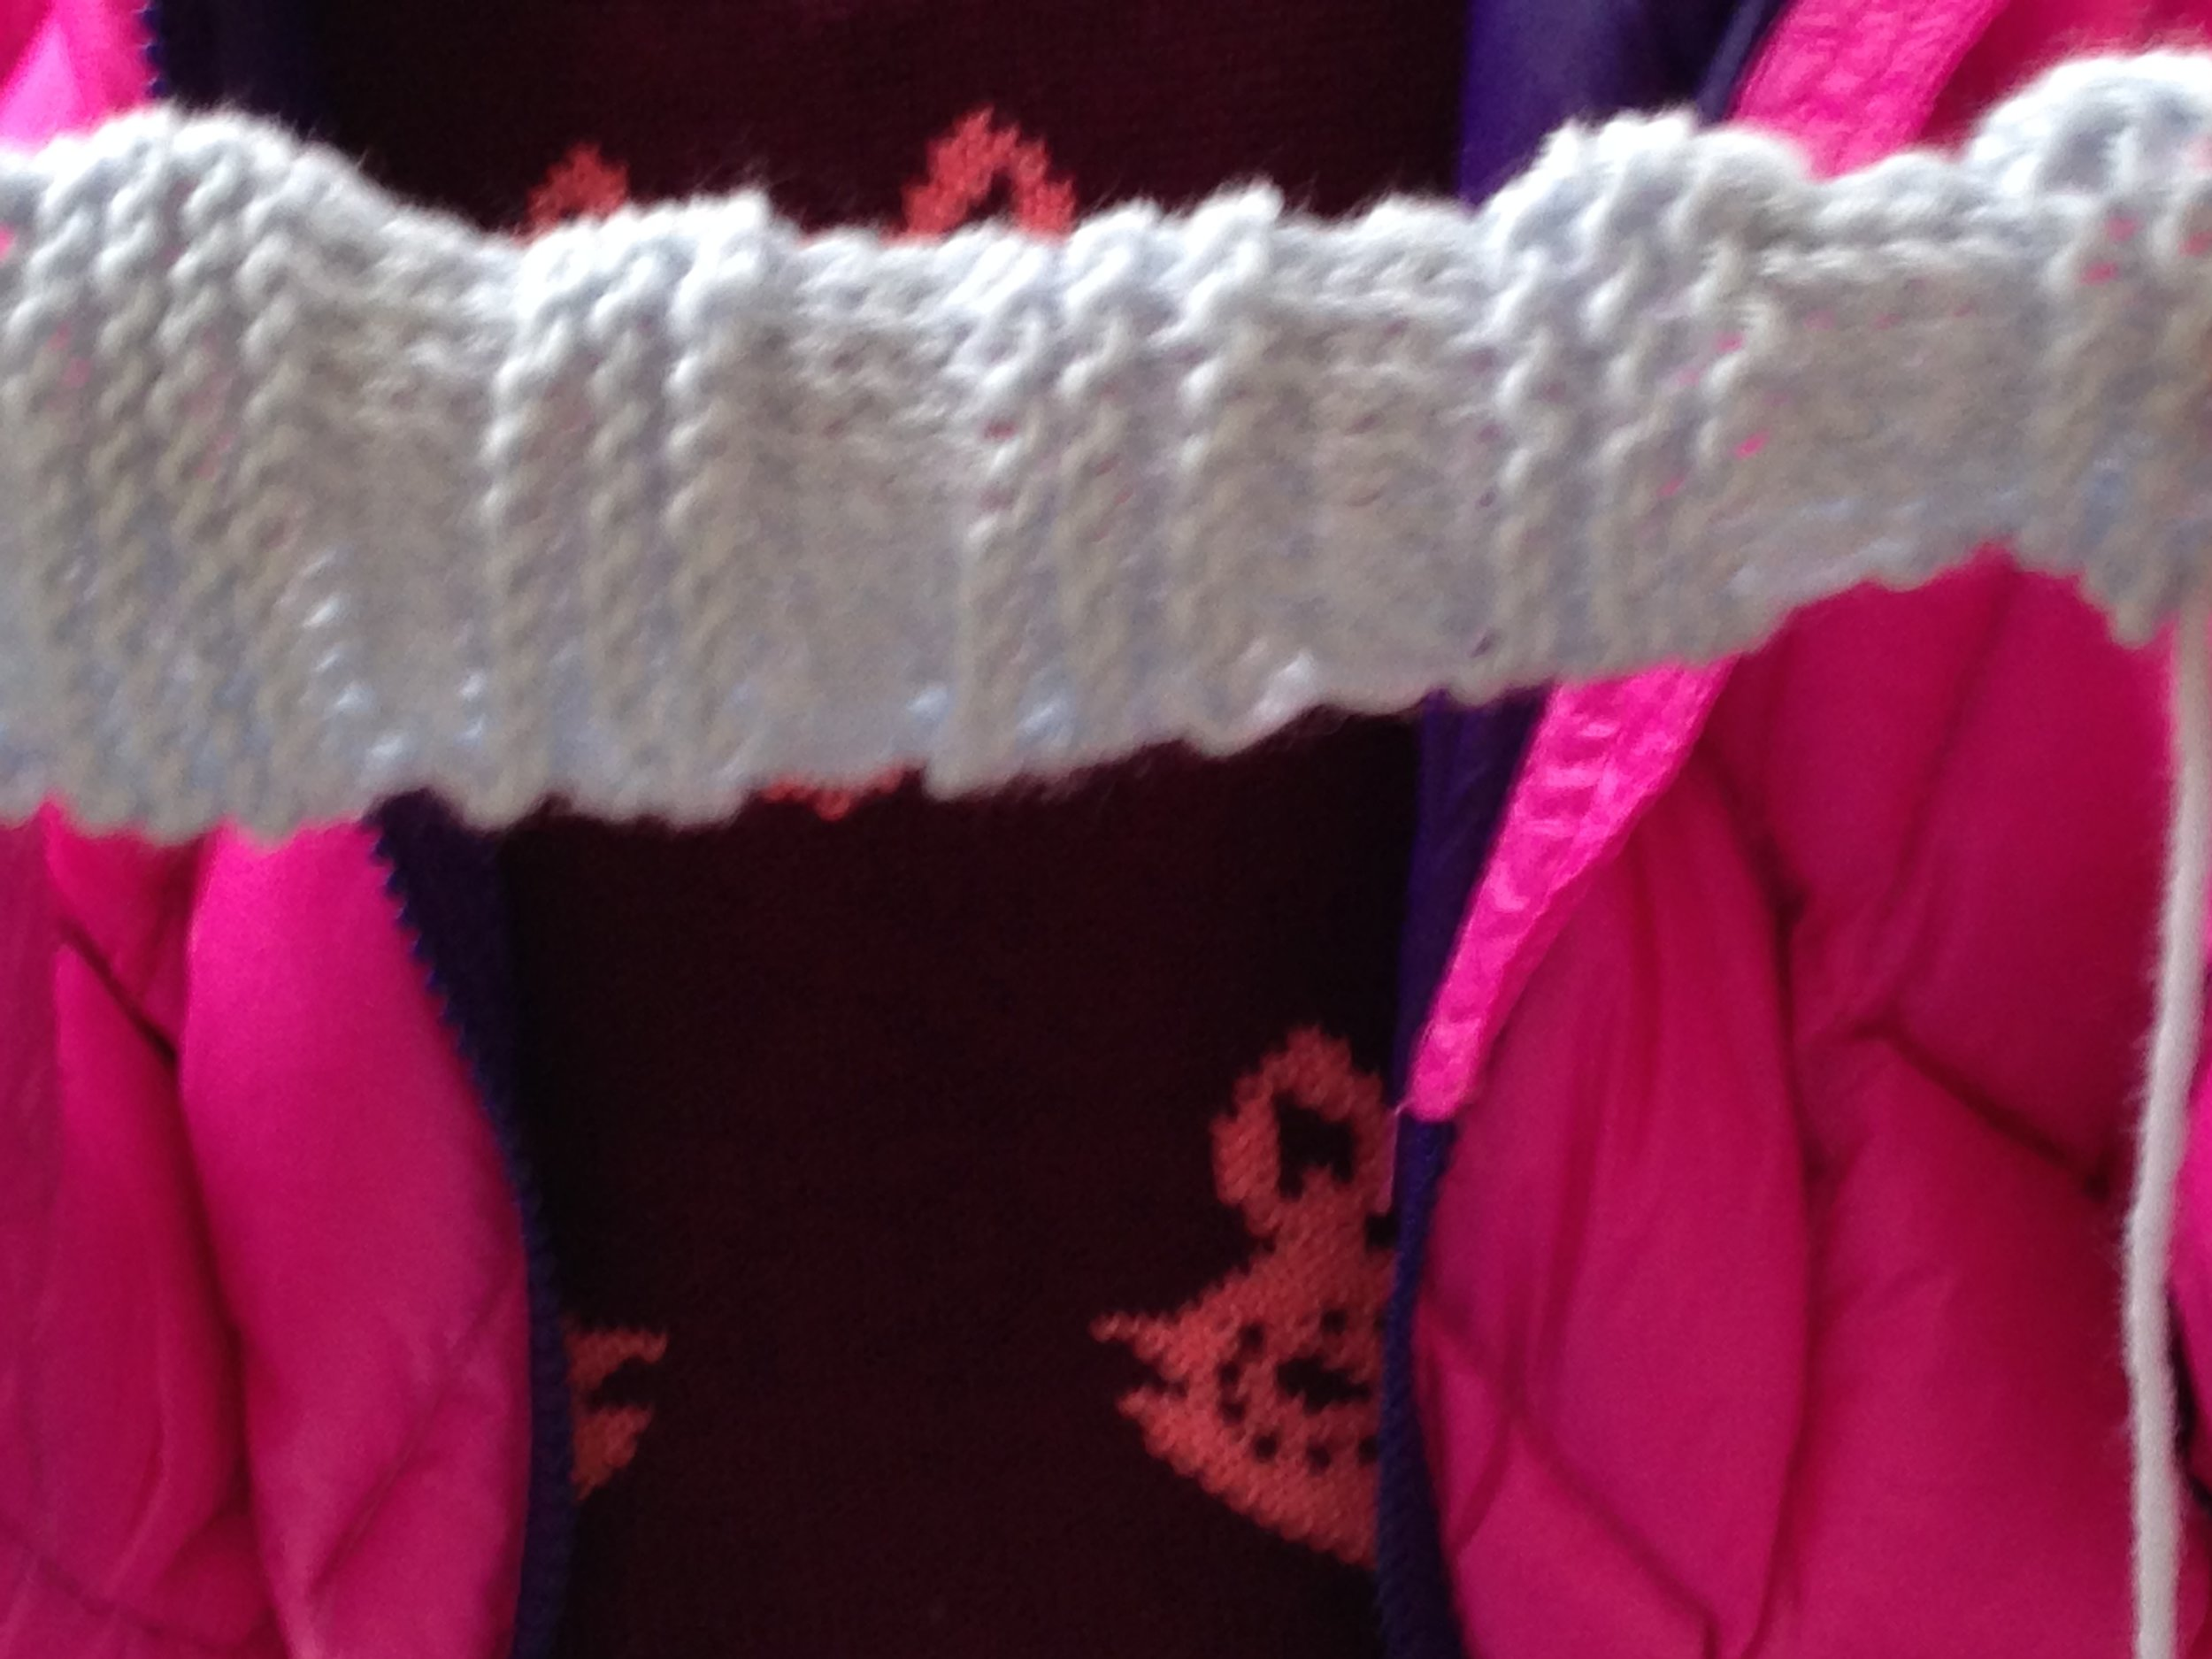 3rd grader knitted strap for a bag.